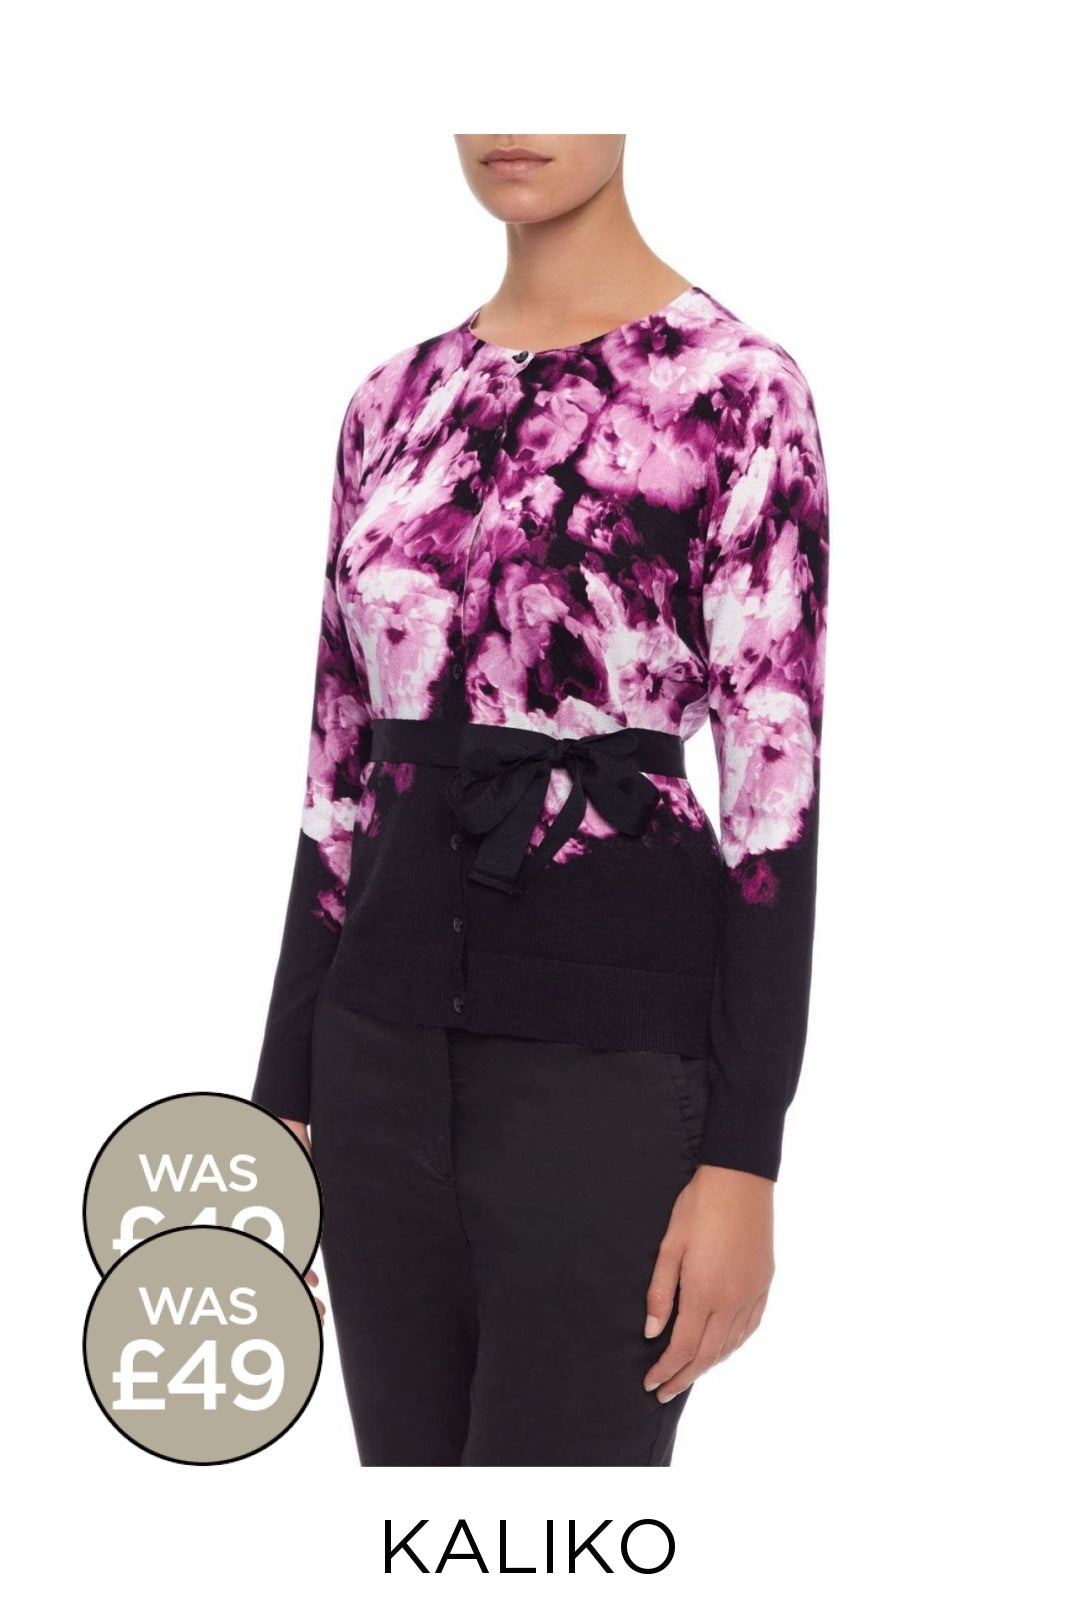 KALIKO KALIKO Black/Pink/Purple Floral Tie Waist Cardigan | 8 Secret Label